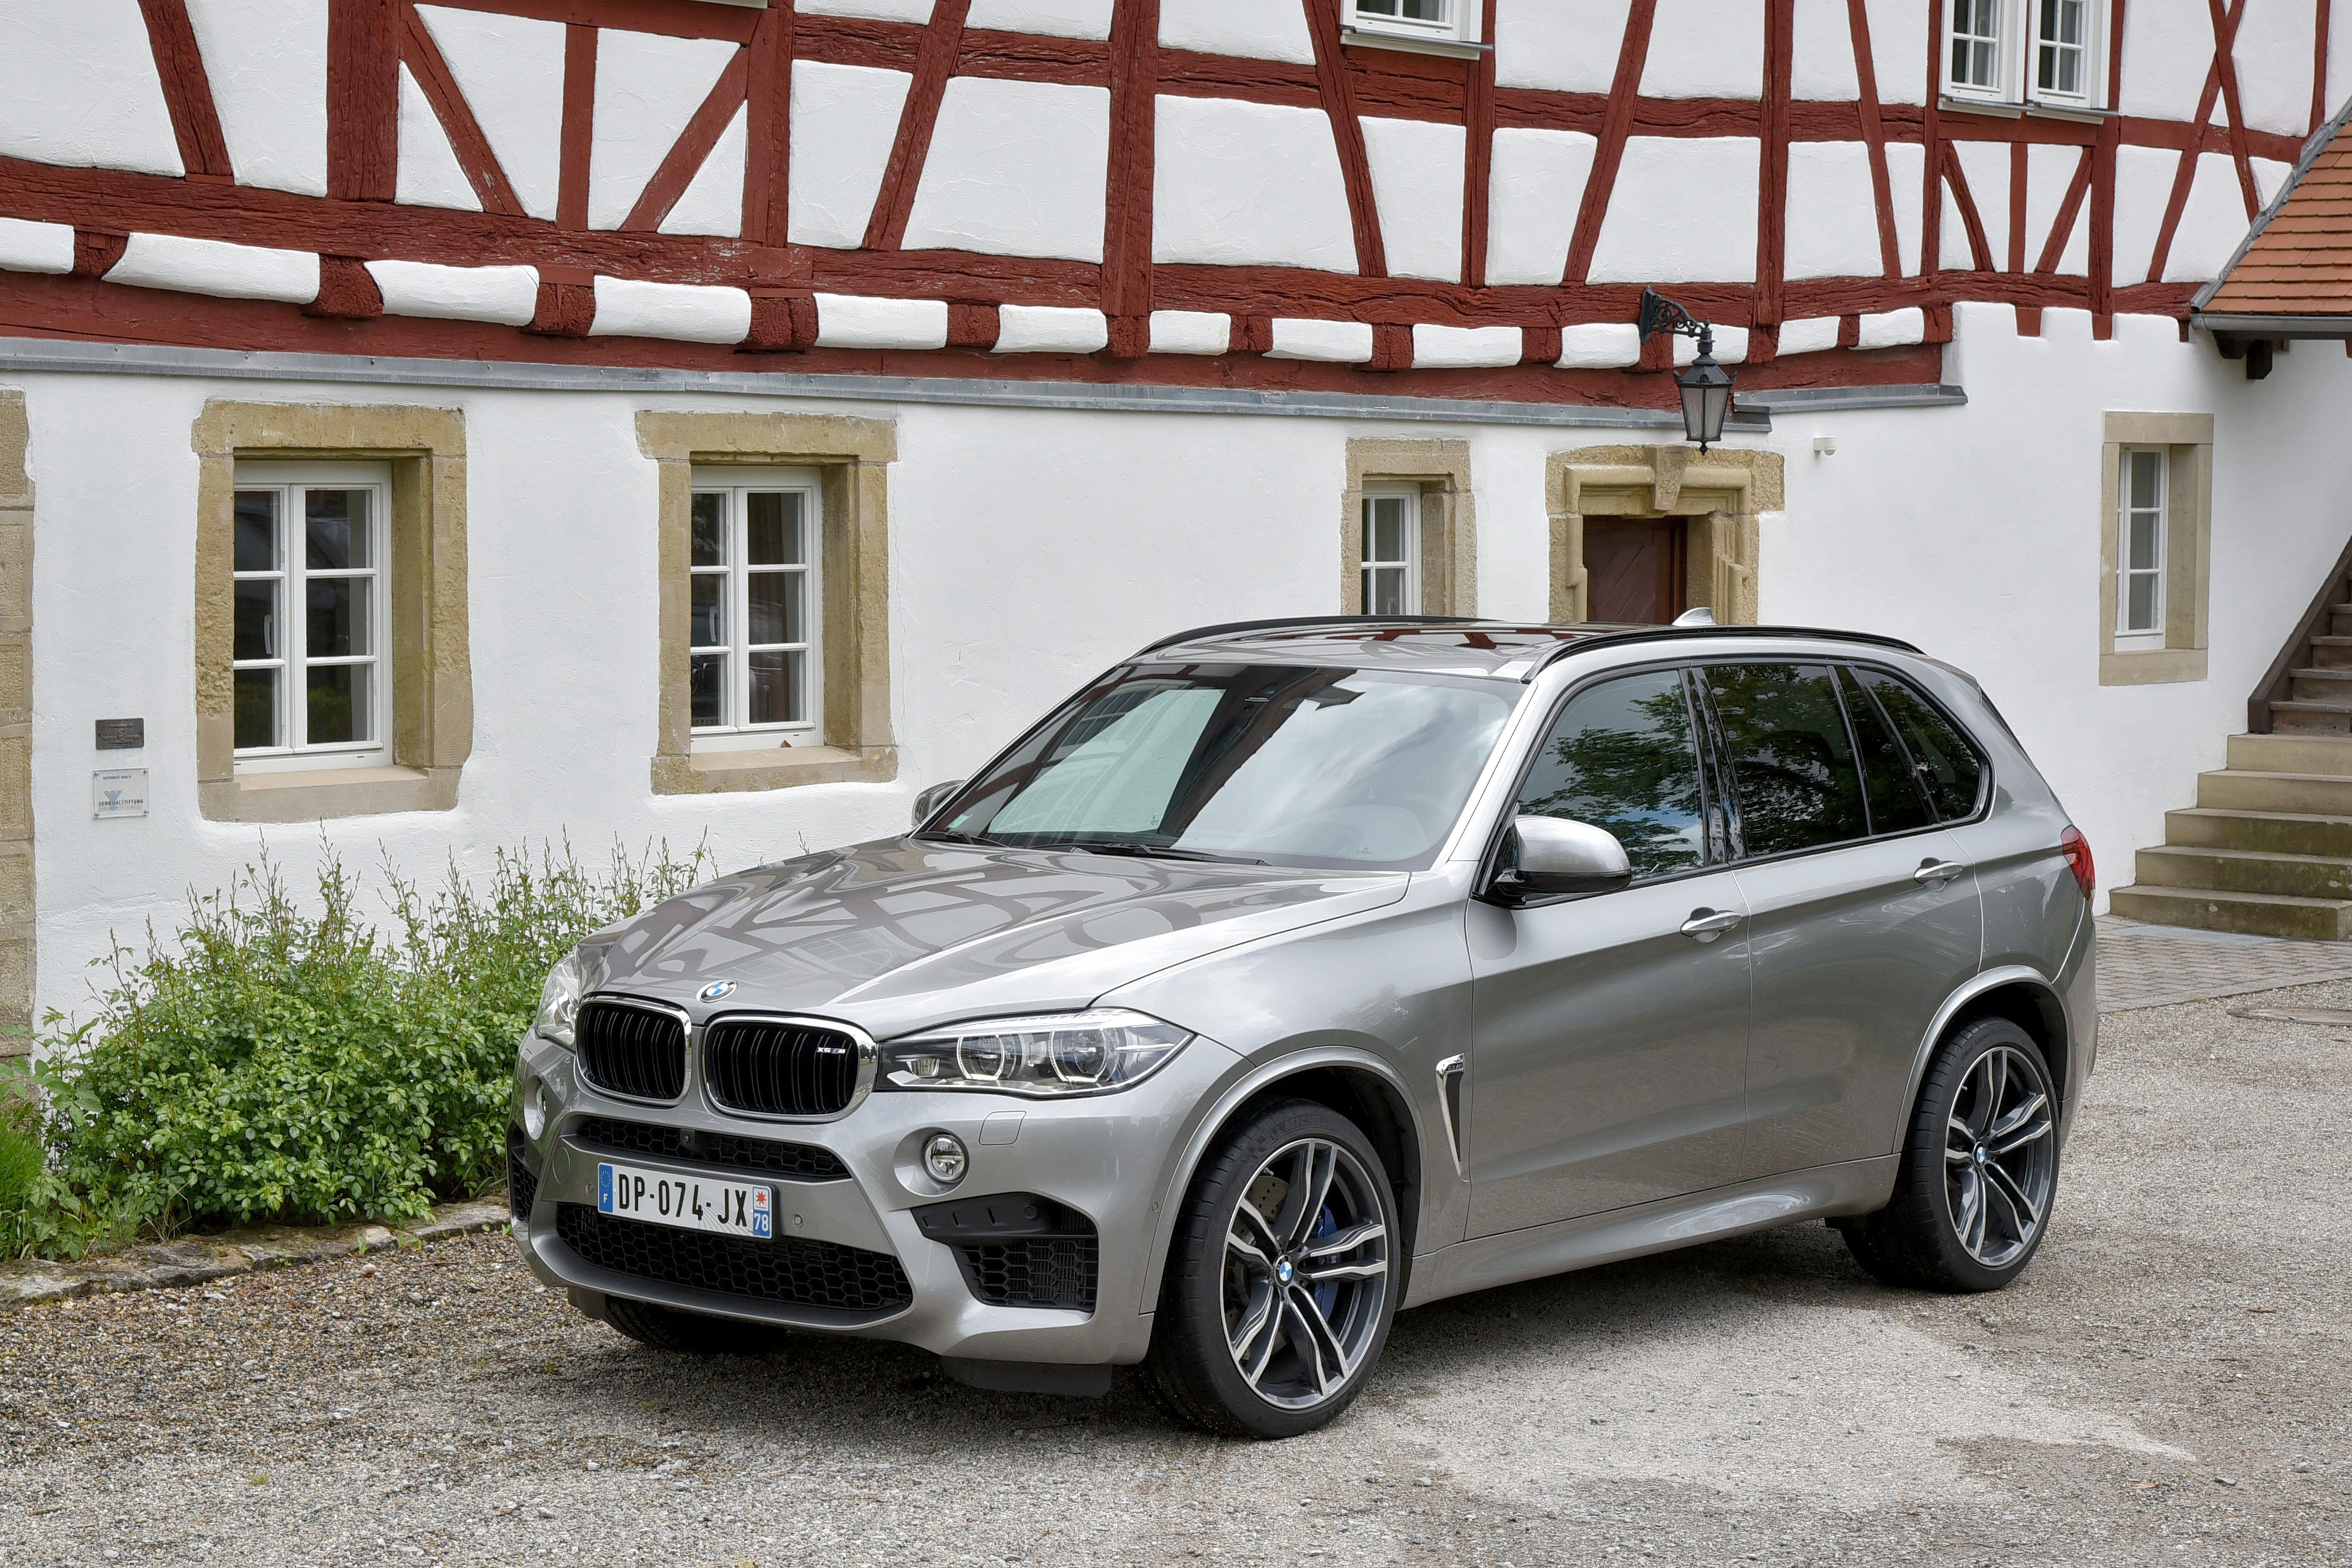 bmw x5 m f15 2015 suv cars wallpaper 4096x2731 703192 wallpaperup. Black Bedroom Furniture Sets. Home Design Ideas